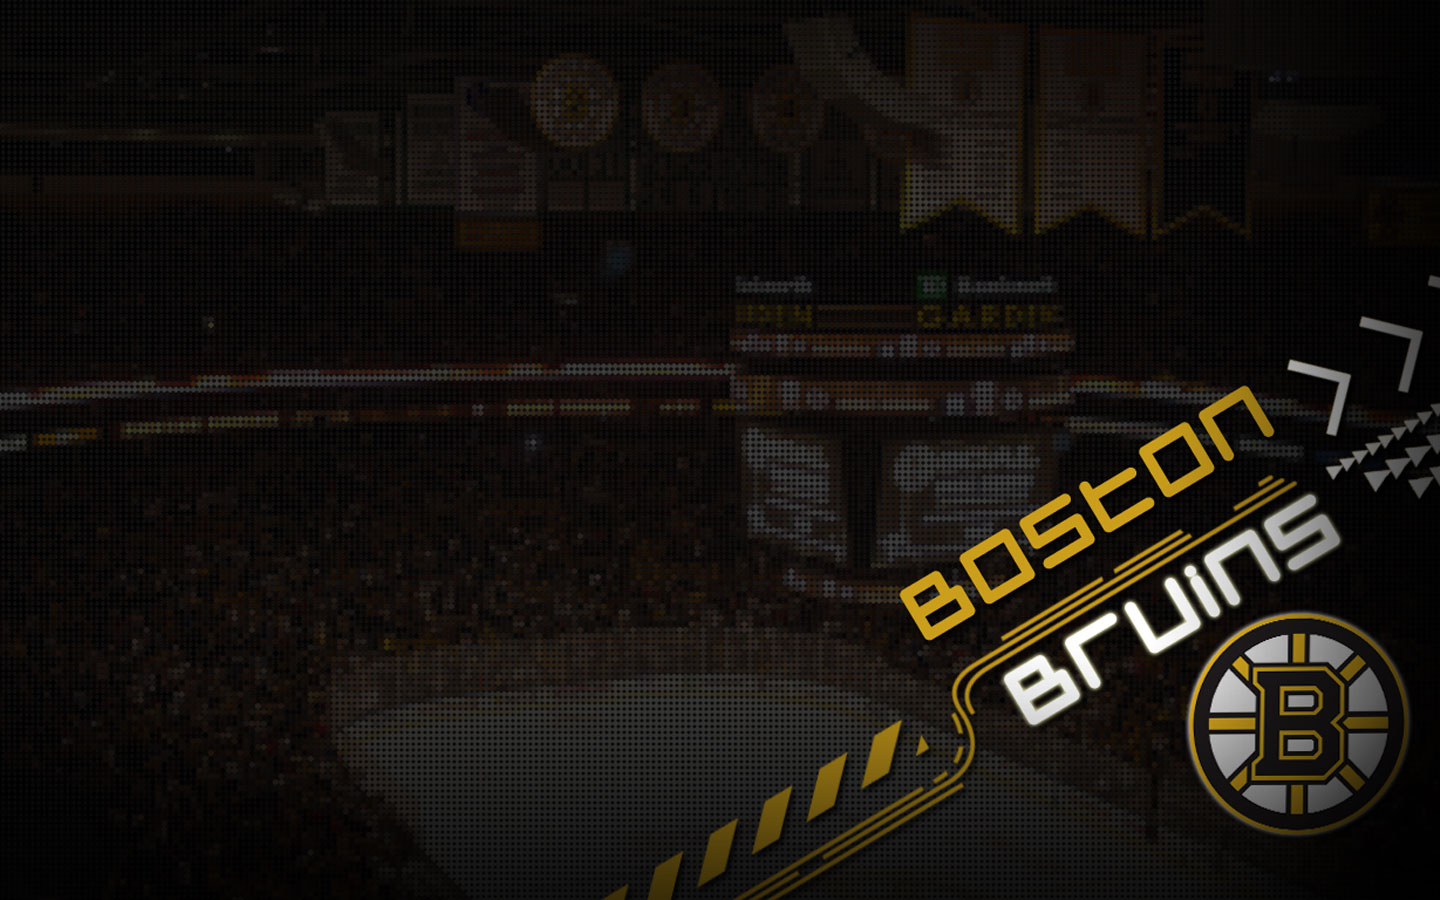 Boston Bruins Desktop Wallpaper - WallpaperSafari